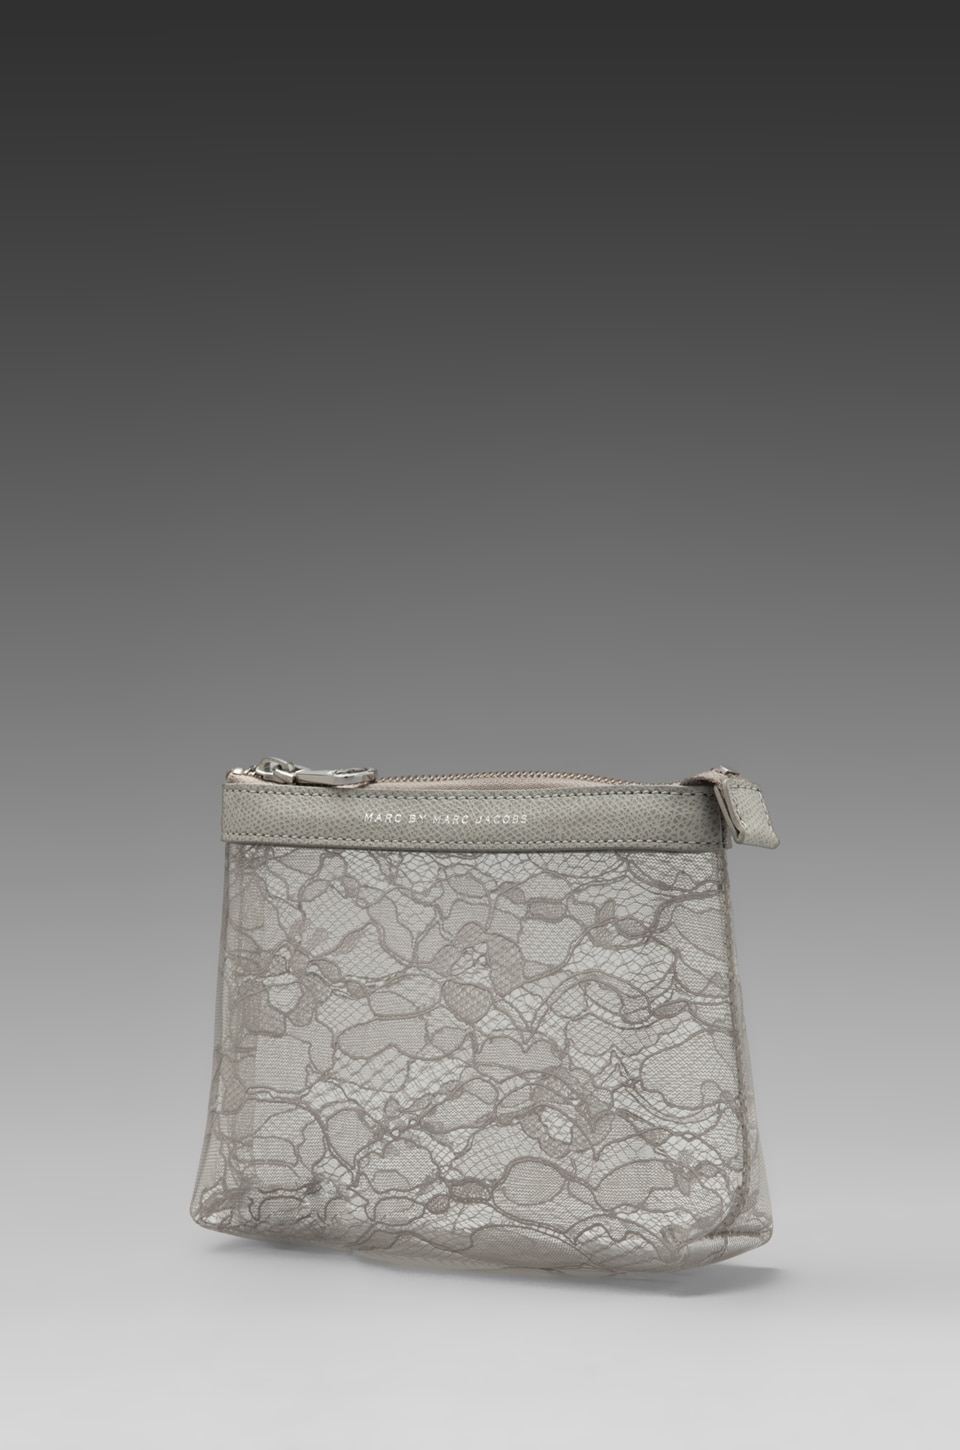 Marc by Marc Jacobs Lace Landscape Cosmetic Bag in Opal Grey